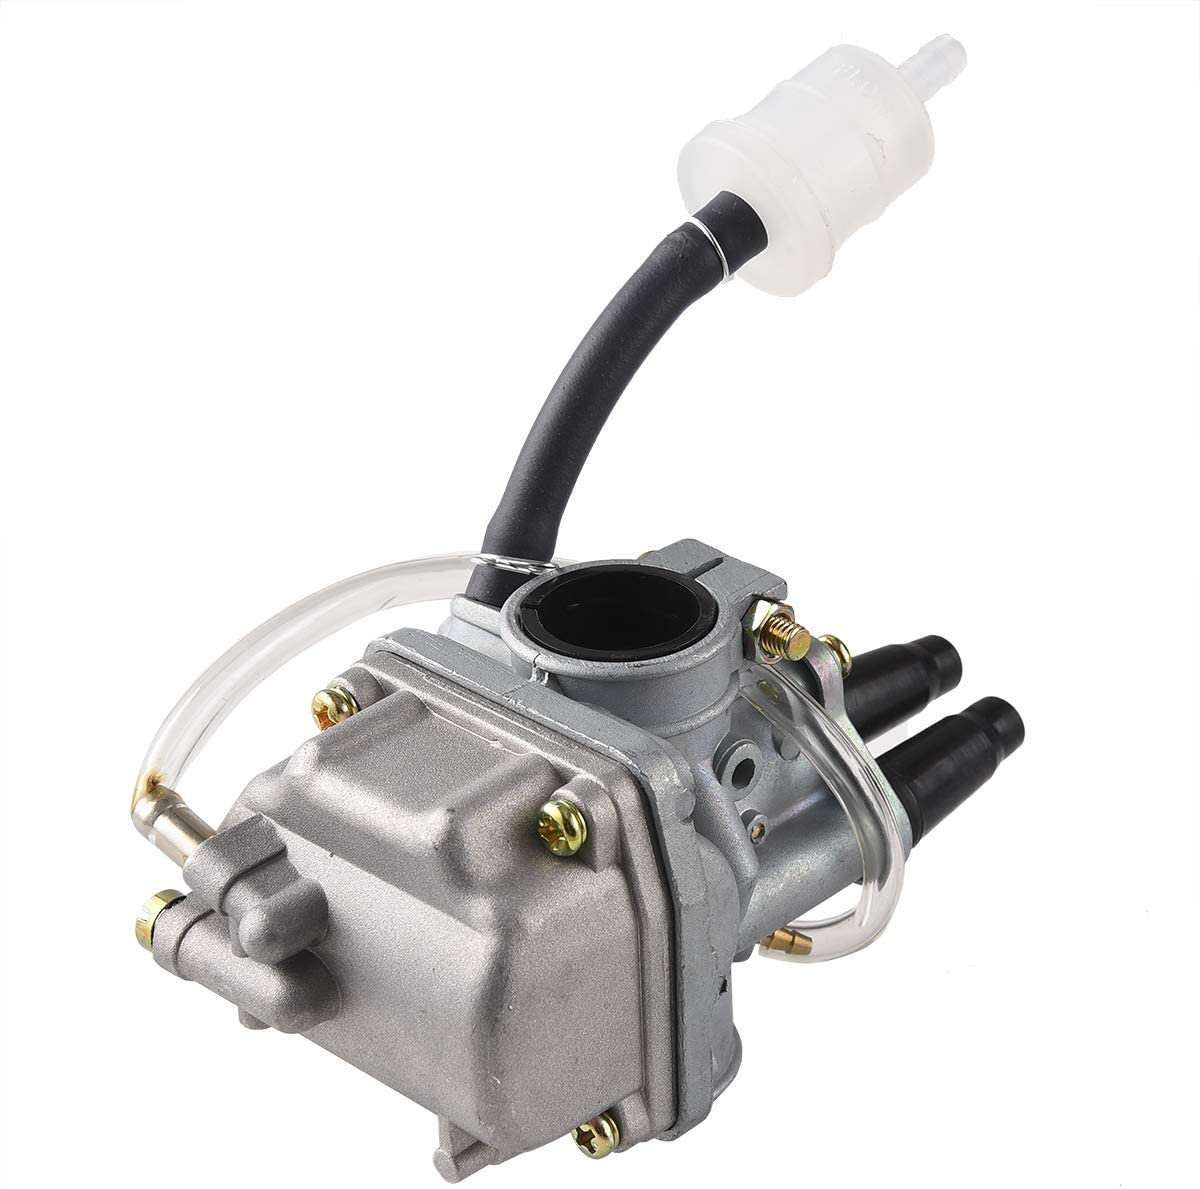 RUHUO Carburetor Carb for PW80 PW 80 Y Zinger Dirt Bikes 1983-2006